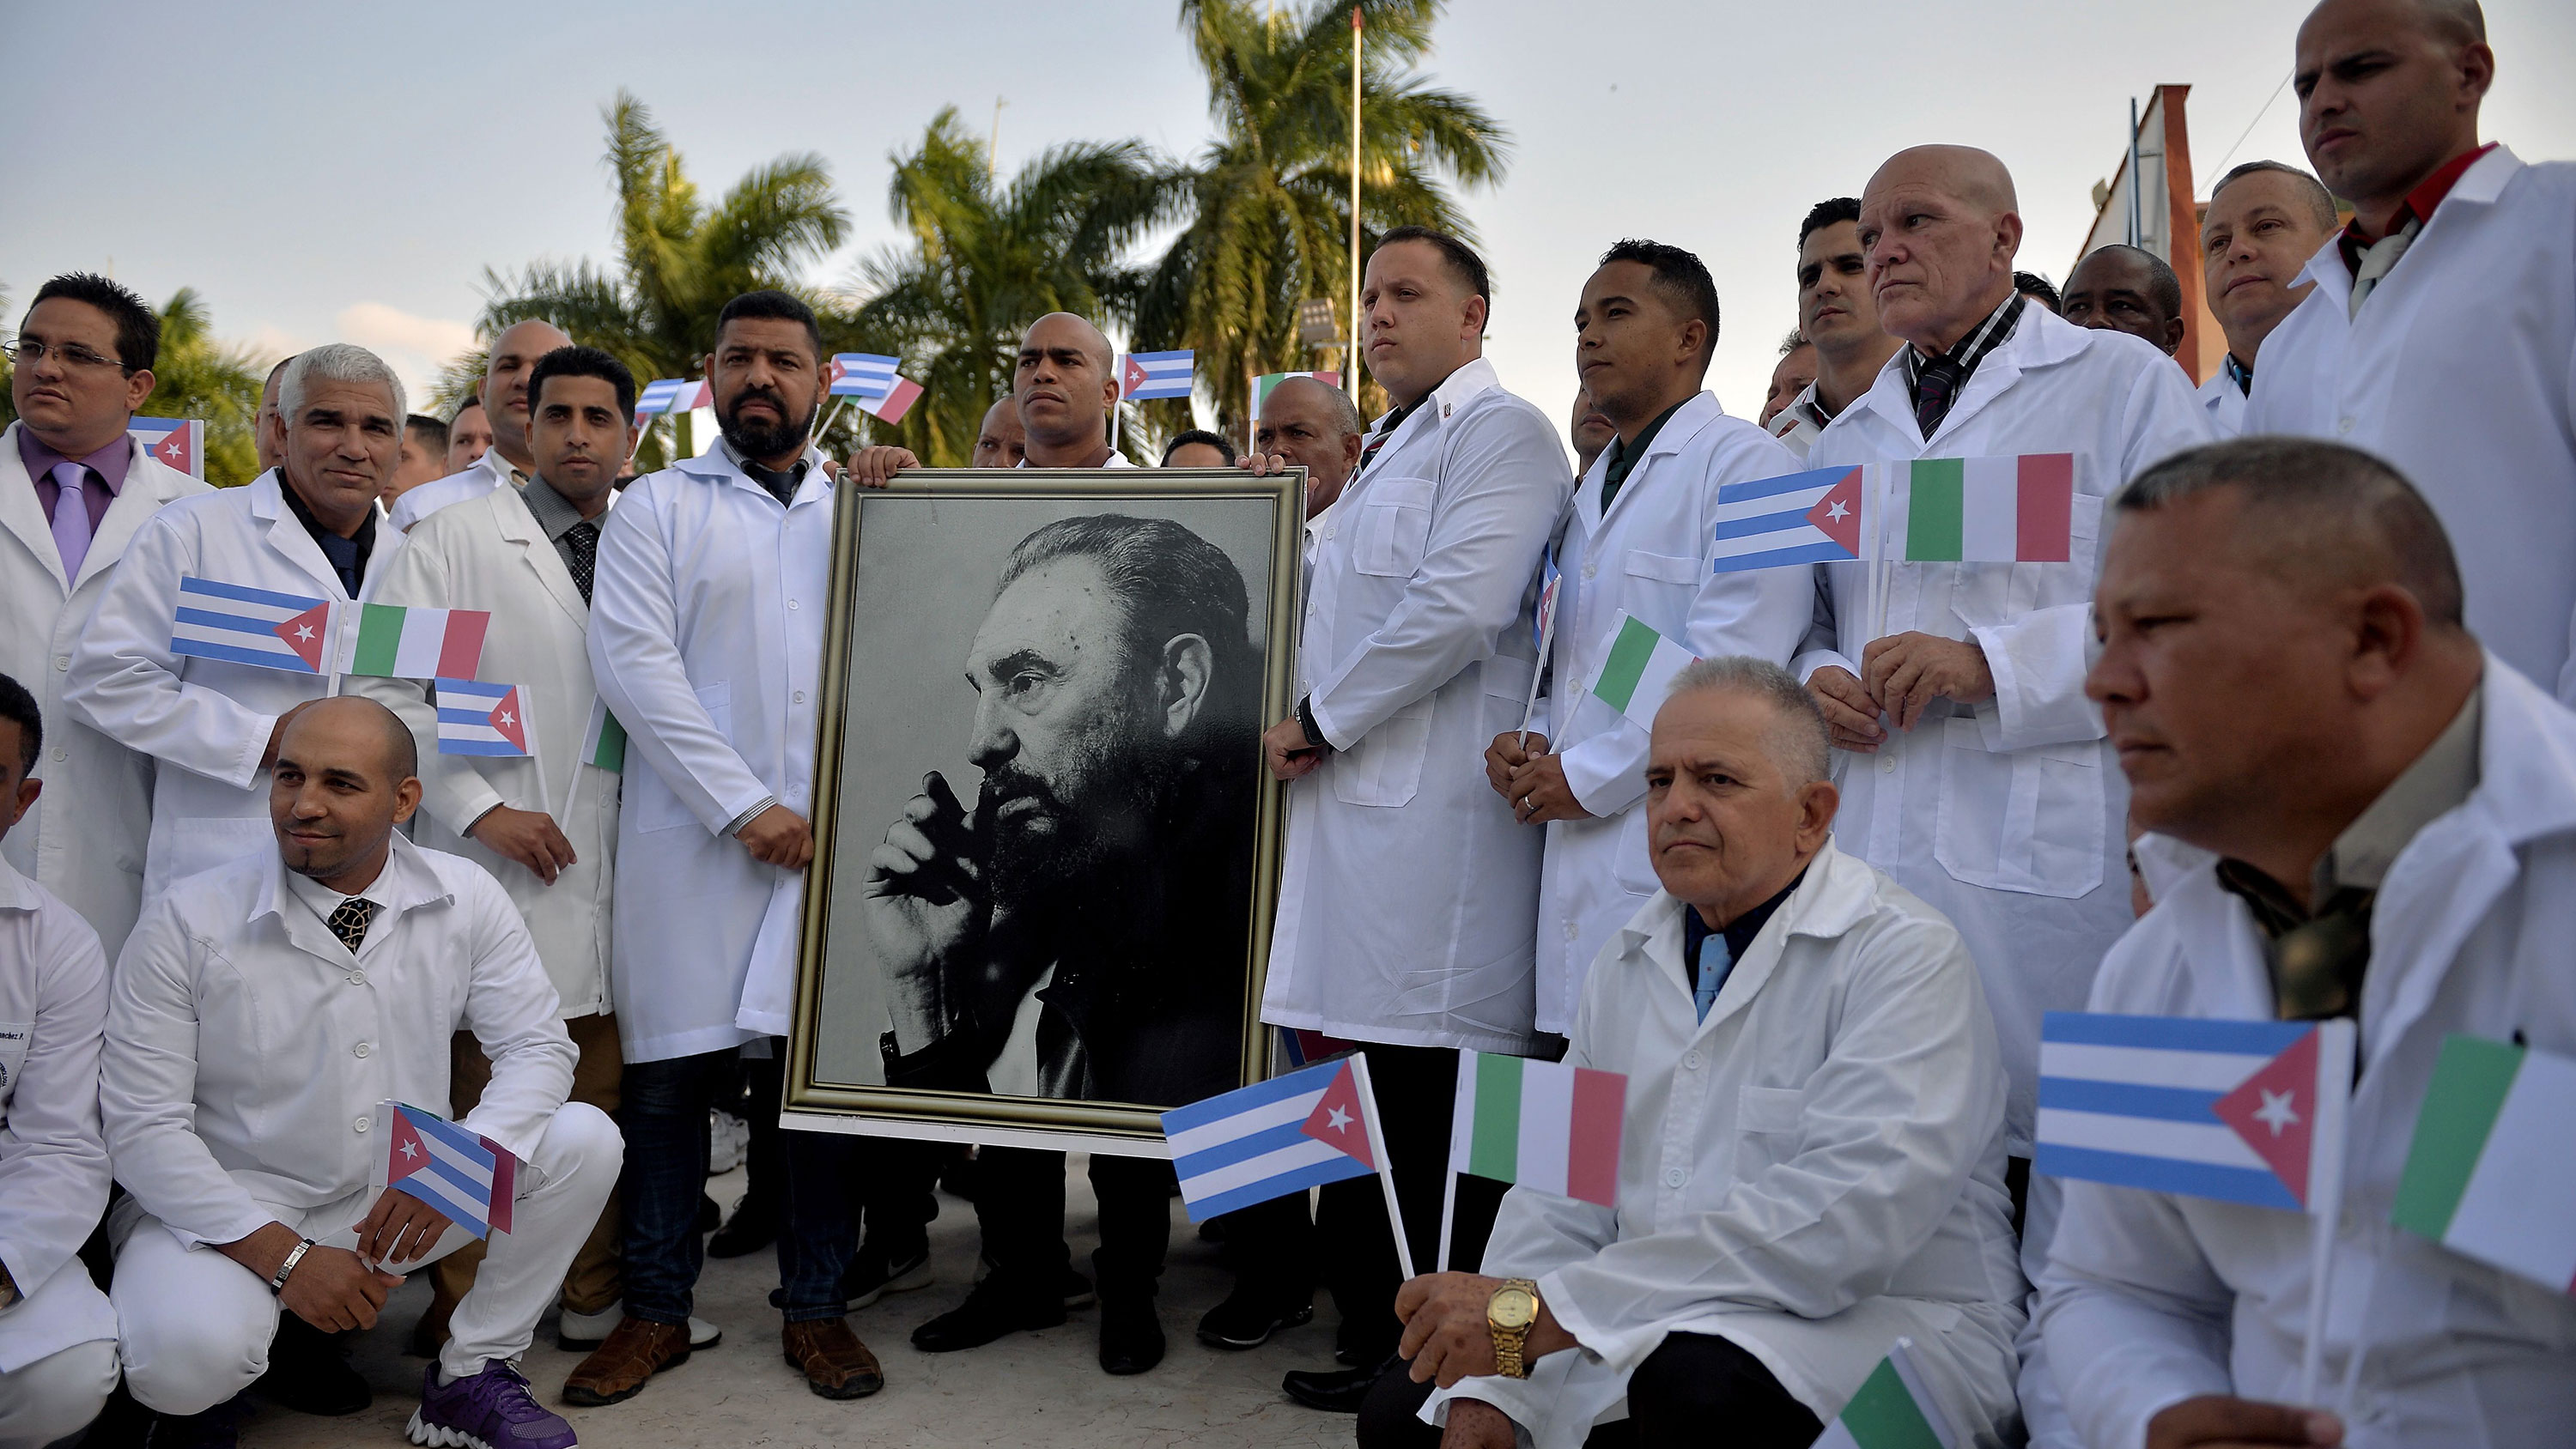 Coronavirus-hit countries are asking Cuba for medical help. Why is the US opposed?